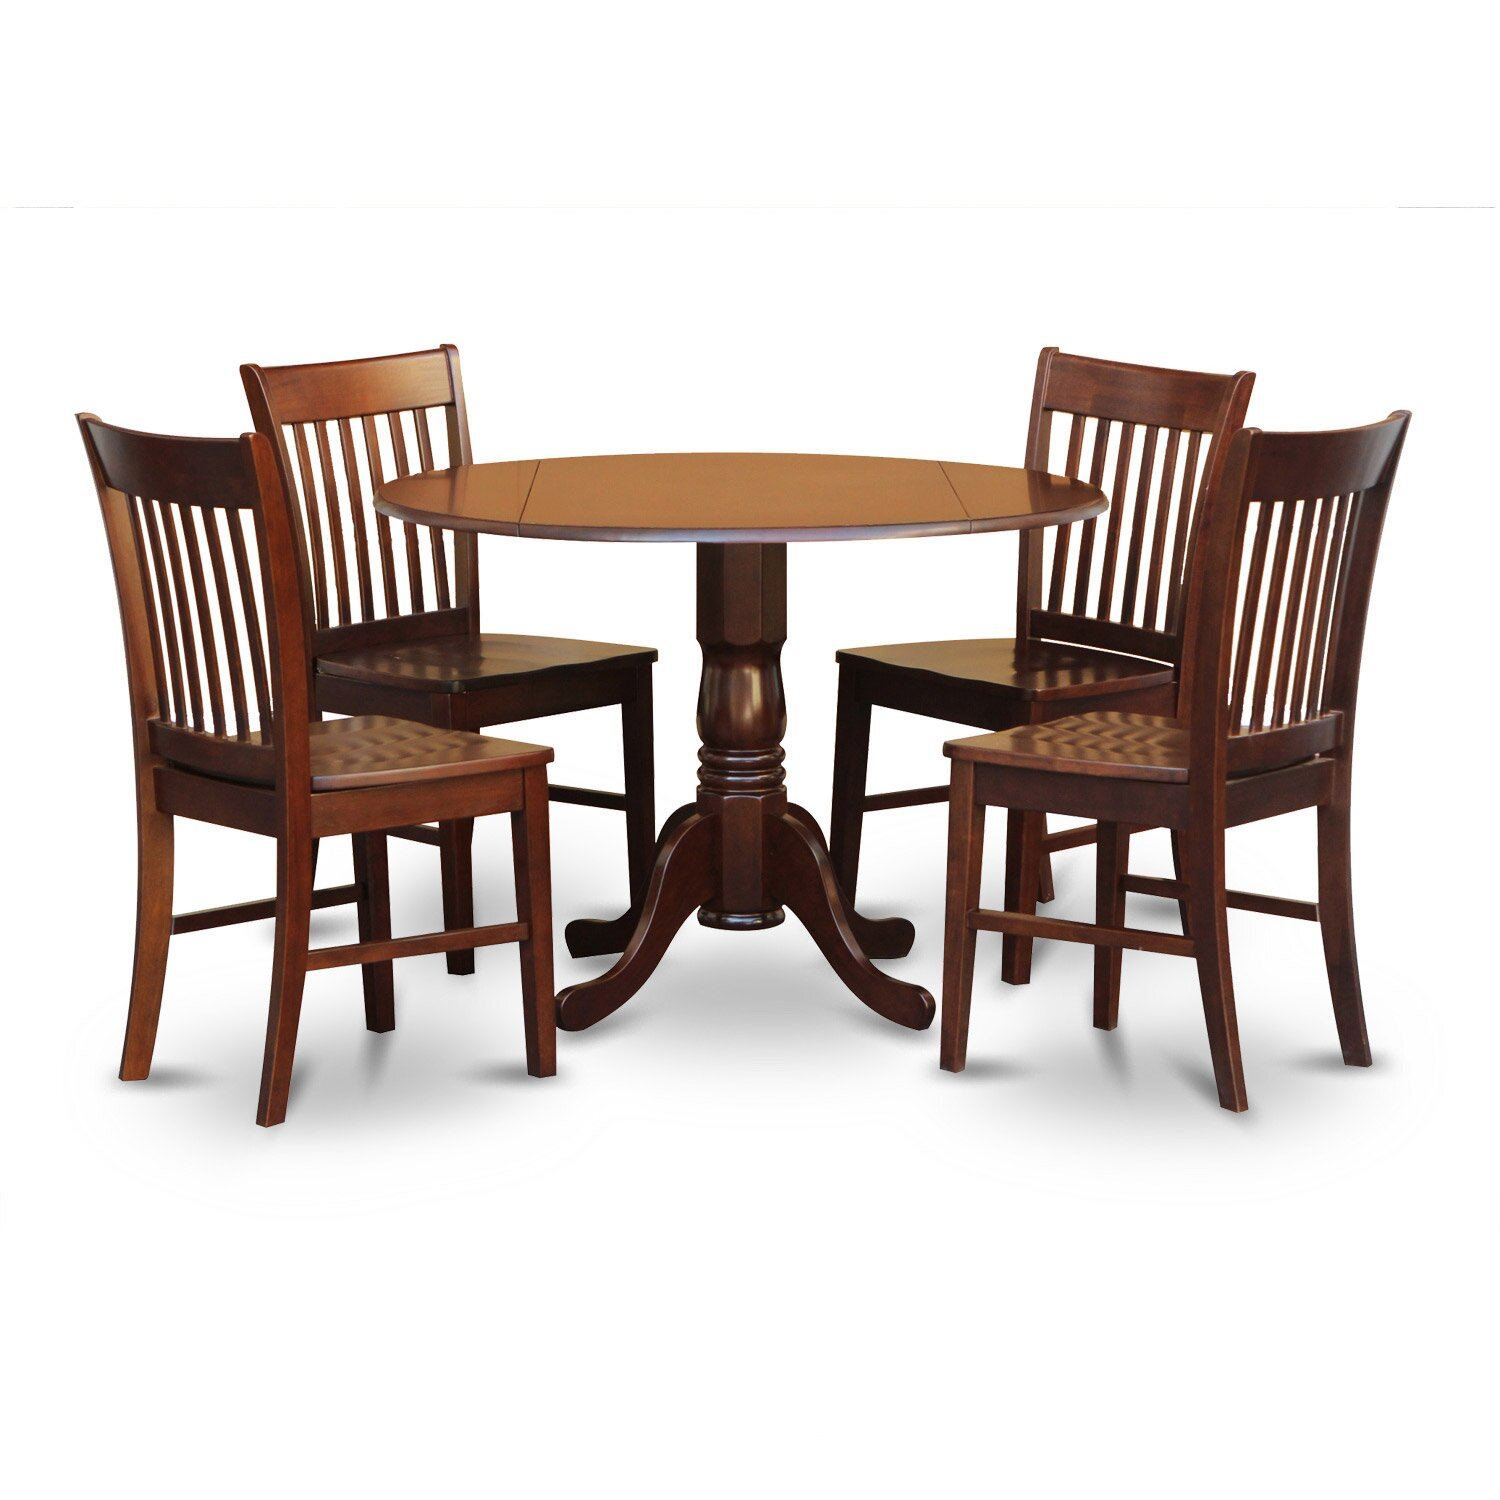 East West Dublin 5 Piece Dining Set & Reviews